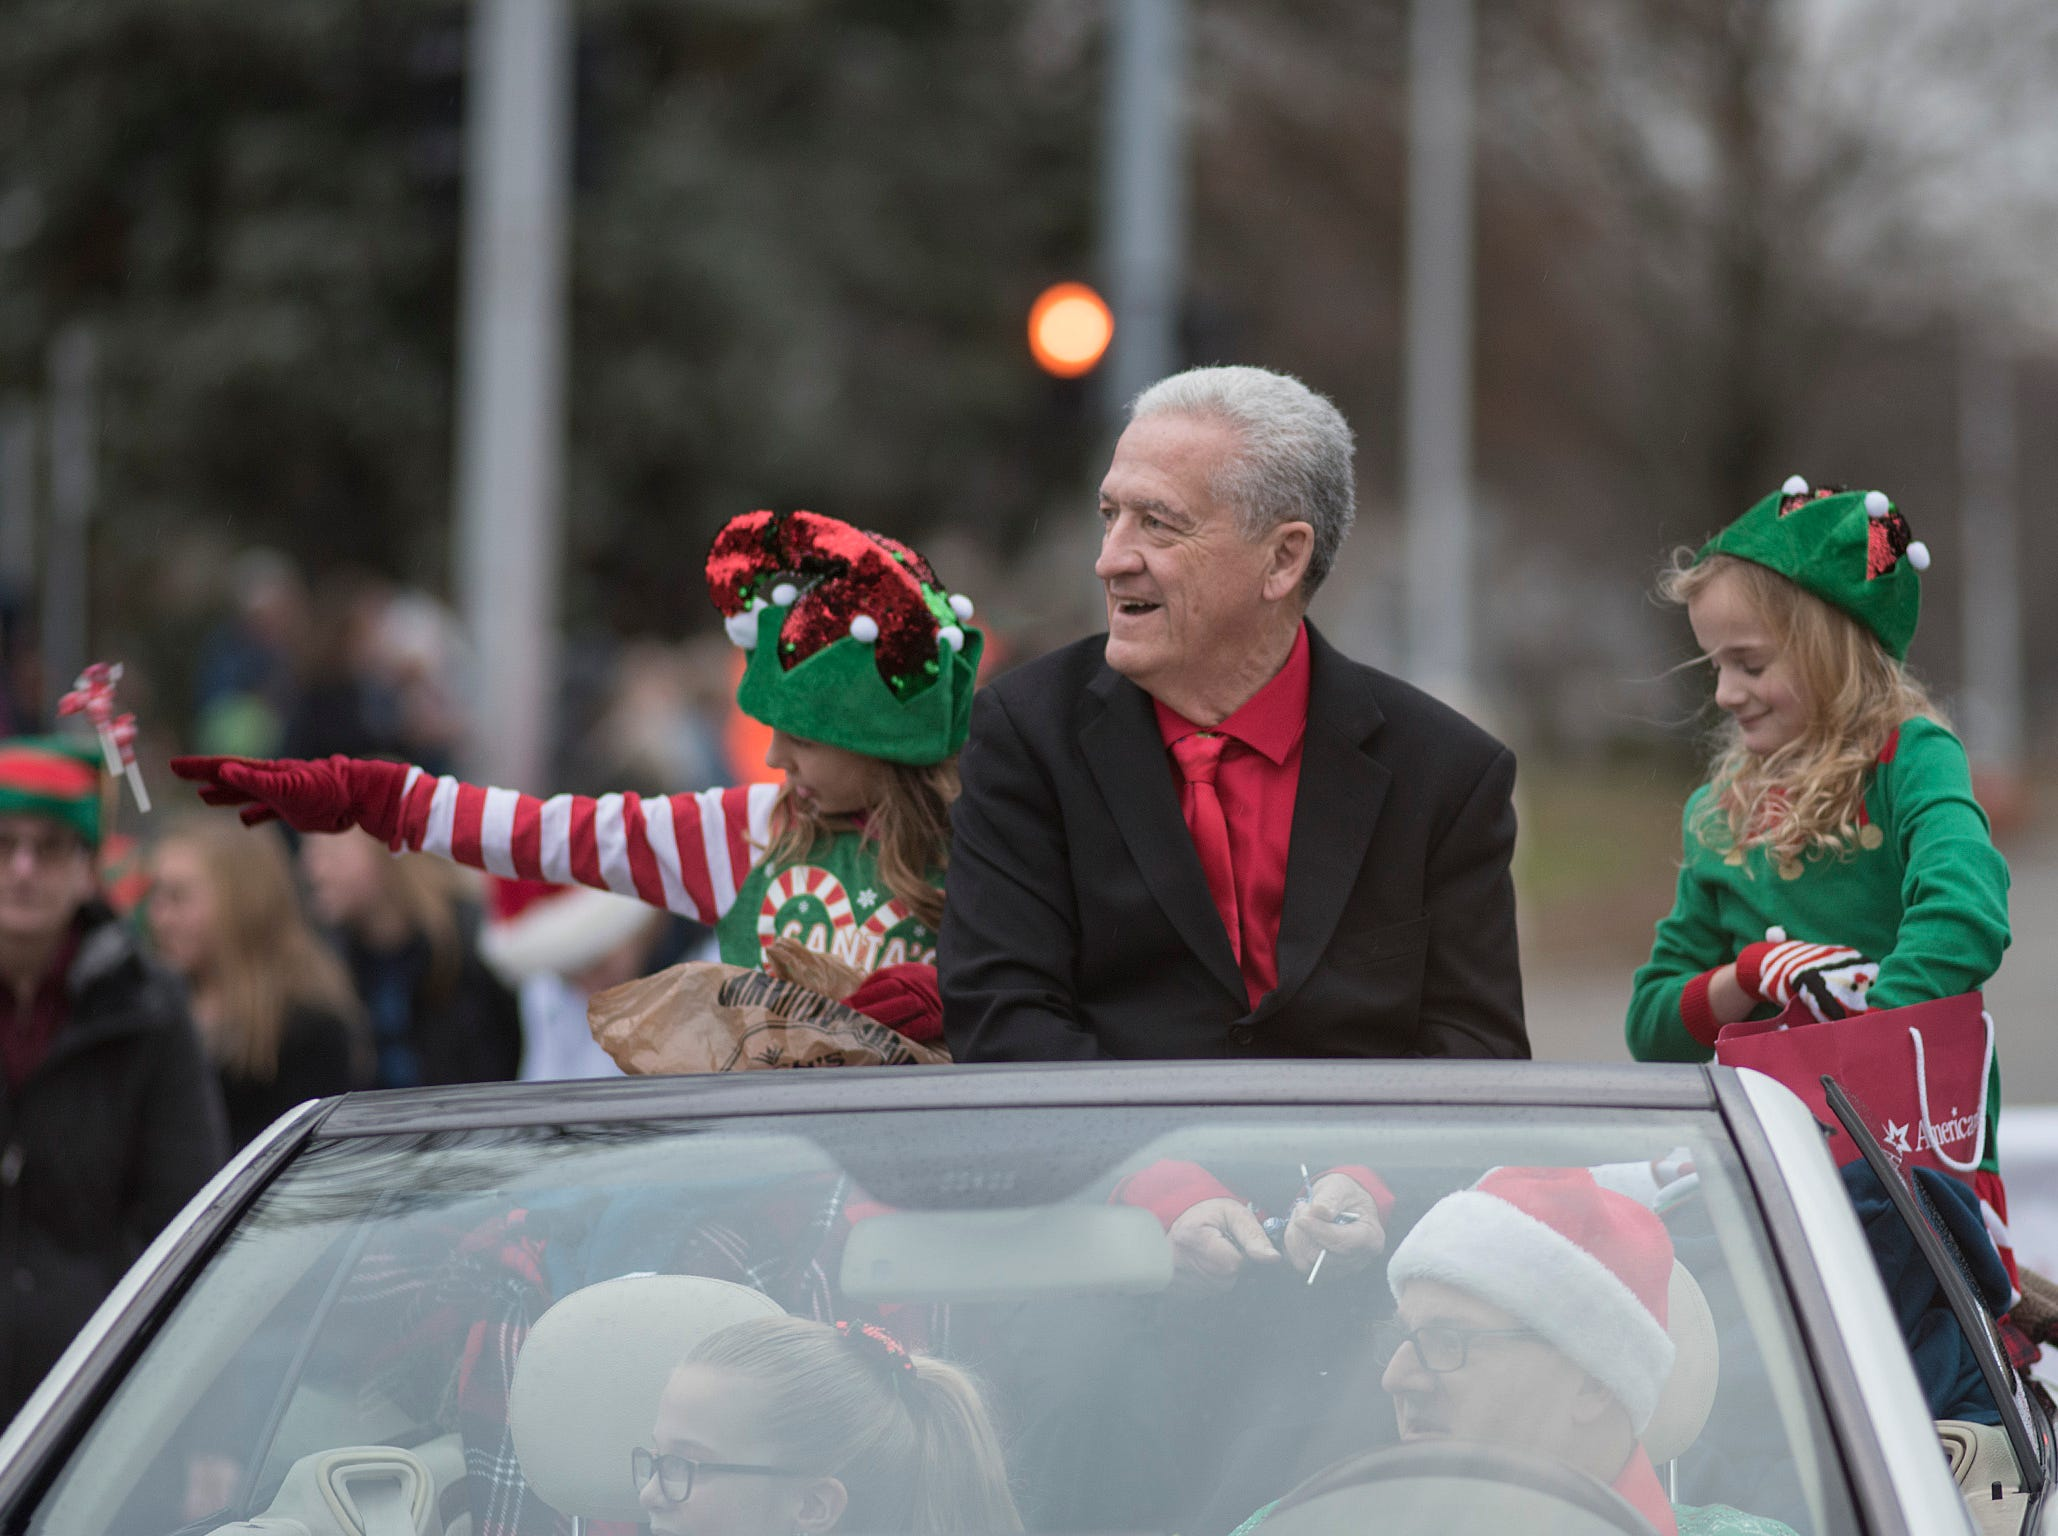 Mayor Dennis Wright and helpers Jillian Sharpe and Macie Miller toss candy to the crowd. Ella Miller rides shotgun